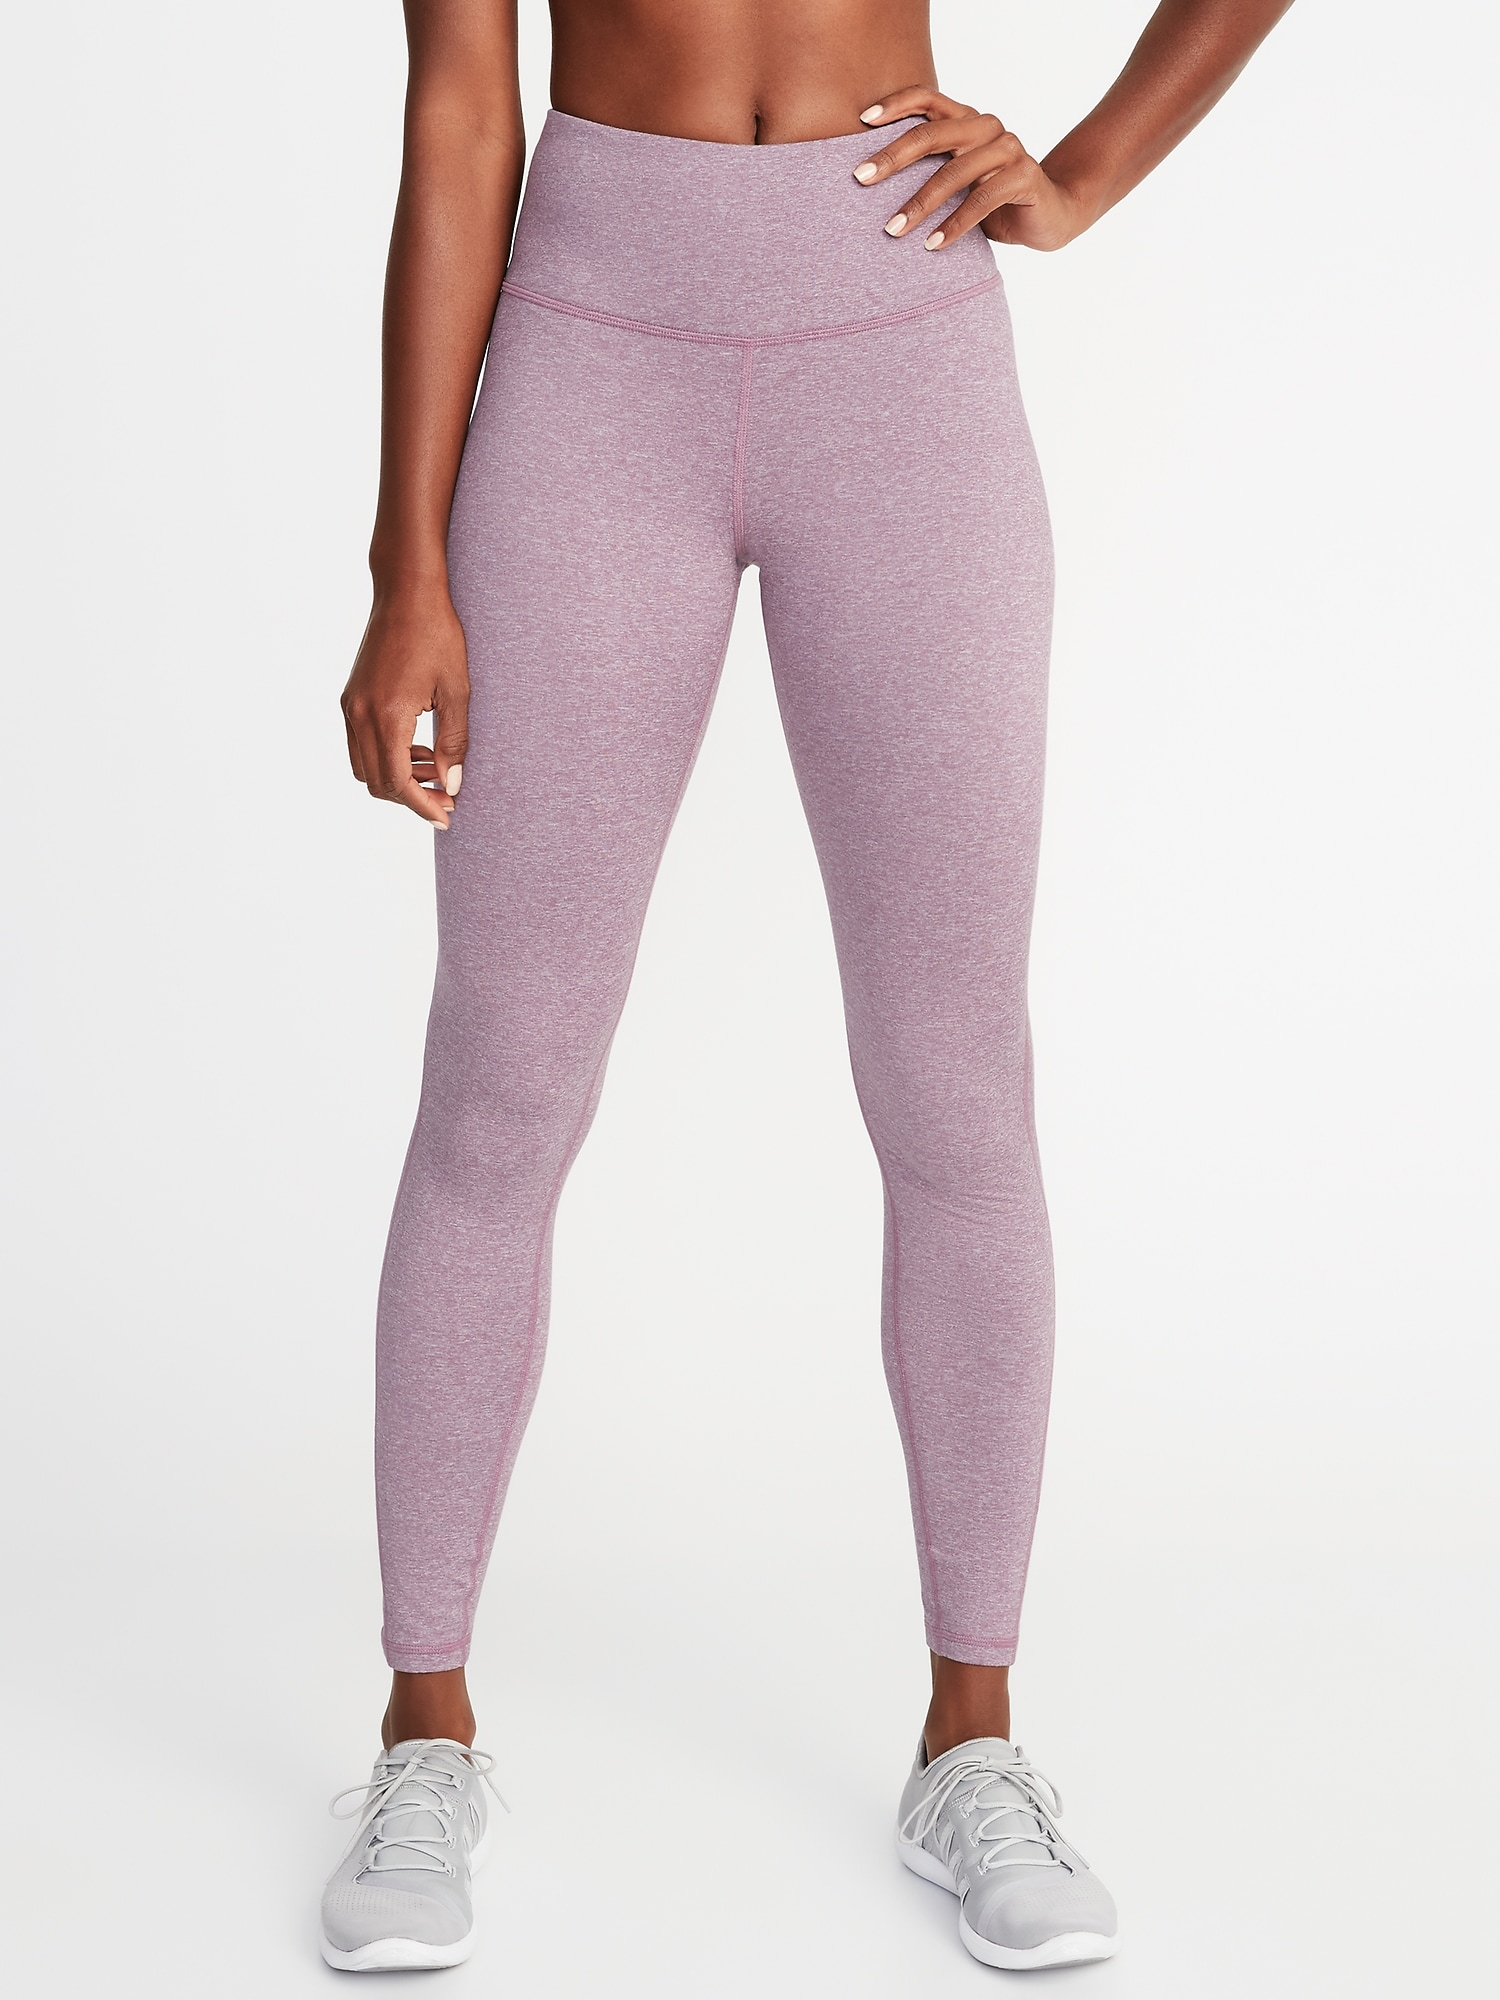 8d15d3d55a26 High-Rise Soft-Brushed Elevate Compression Leggings for Women | Old Navy